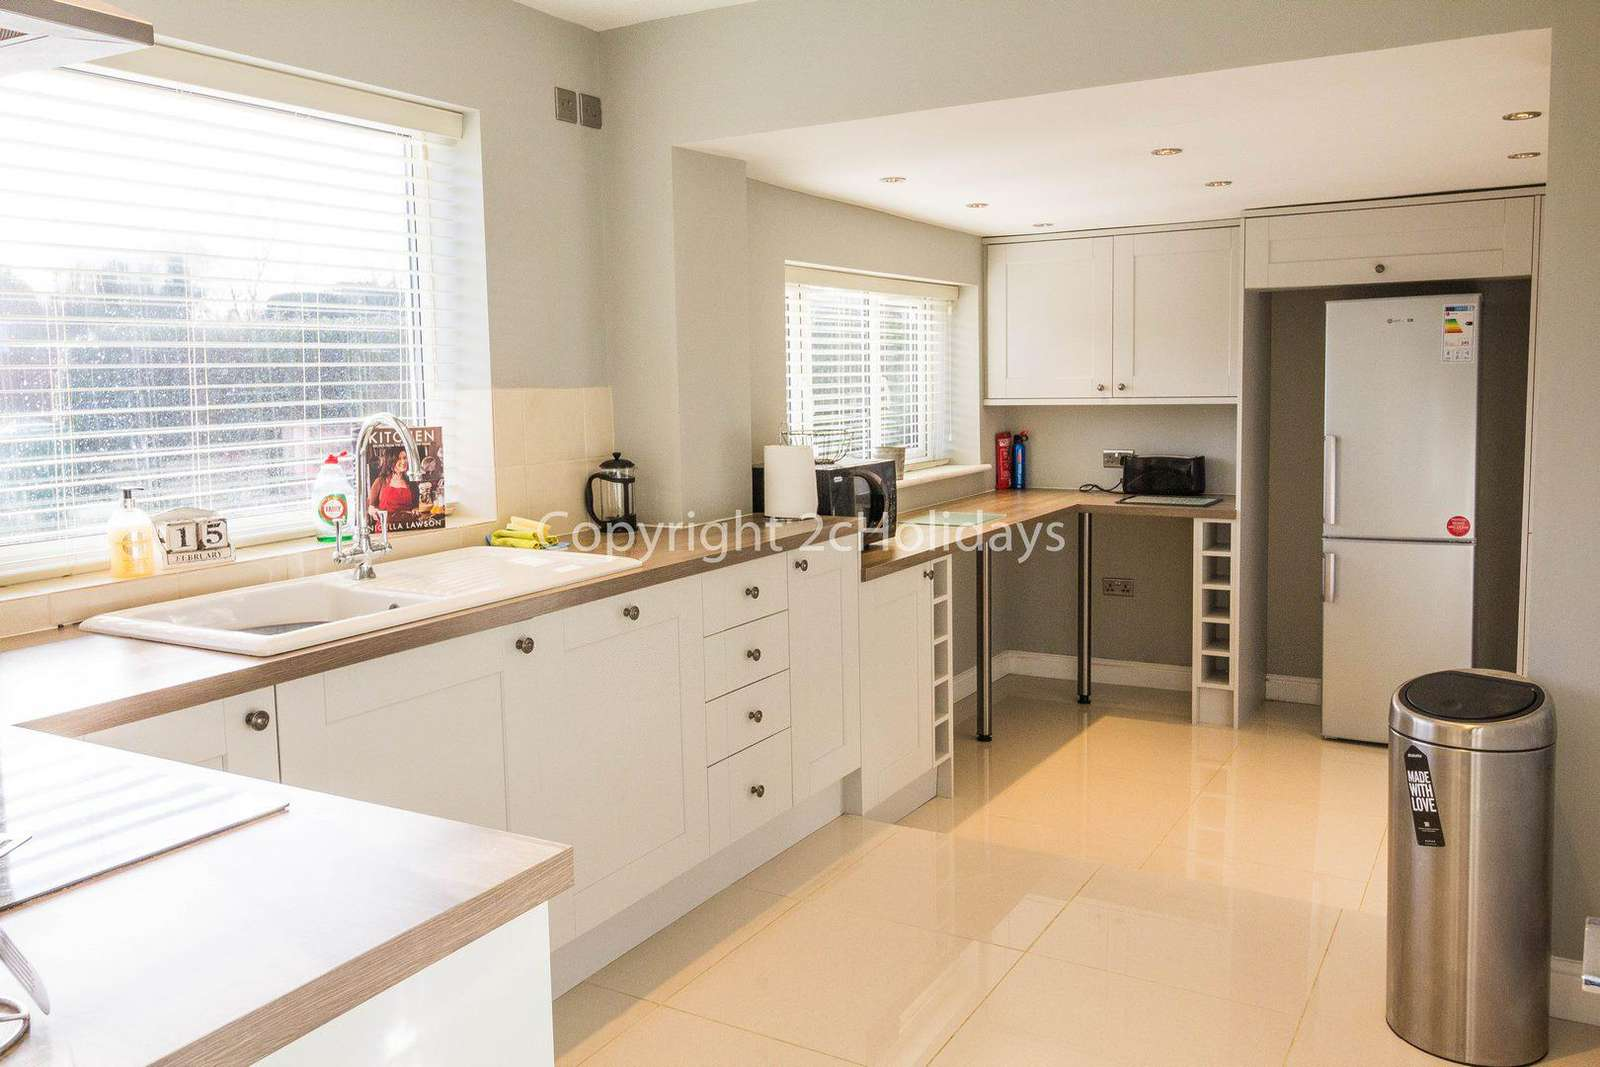 Fully equipped modern kitchen, perfect for self-catering breaks